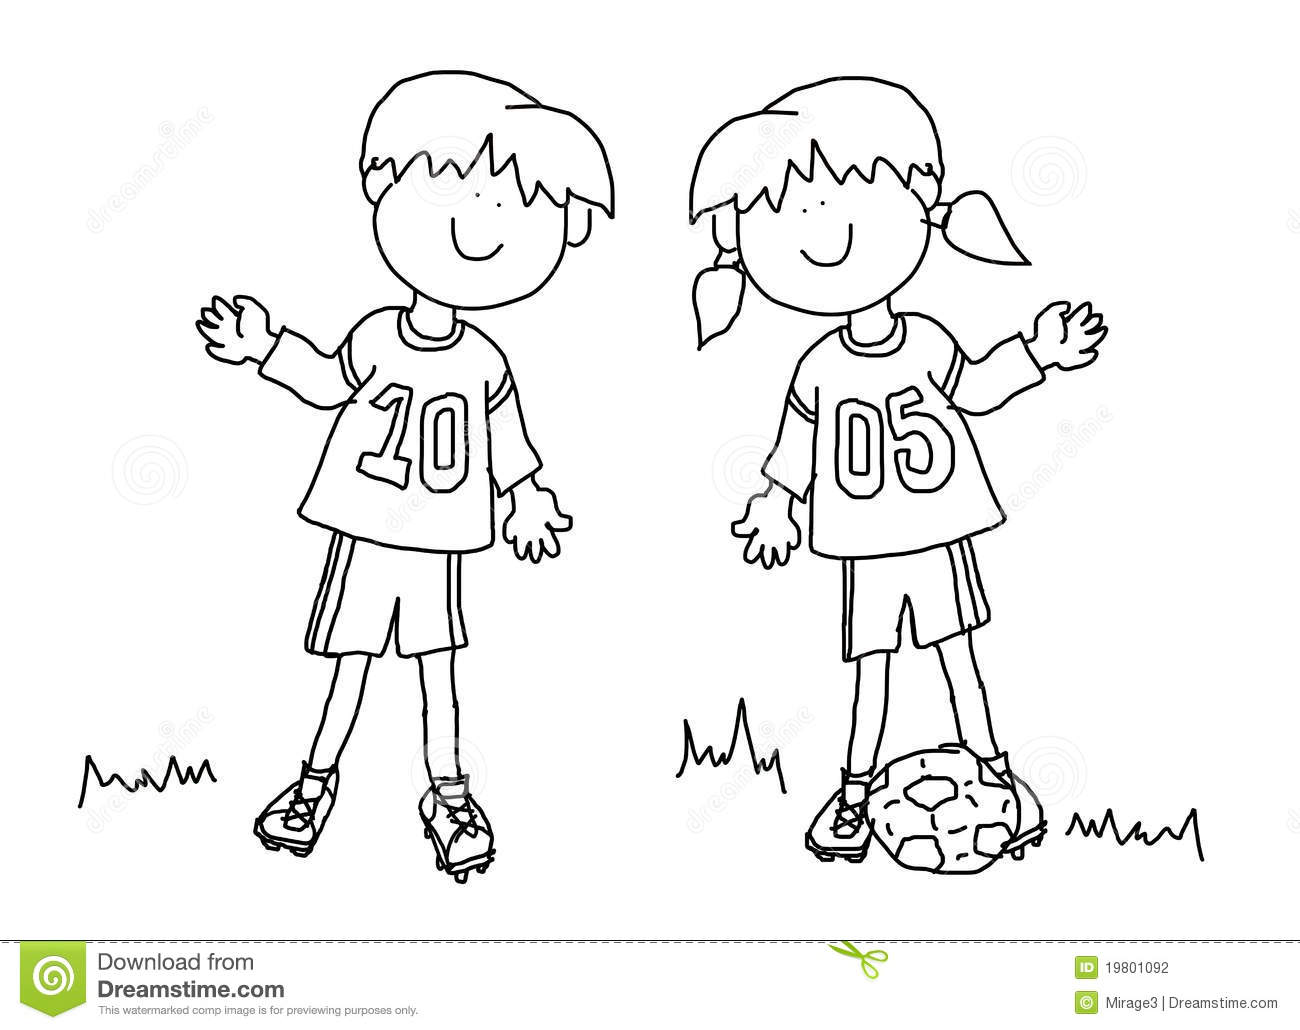 Footballeur de dessin anim de gar on et de fille illustration stock illustration du pi ce - Dessin fille et garcon ...